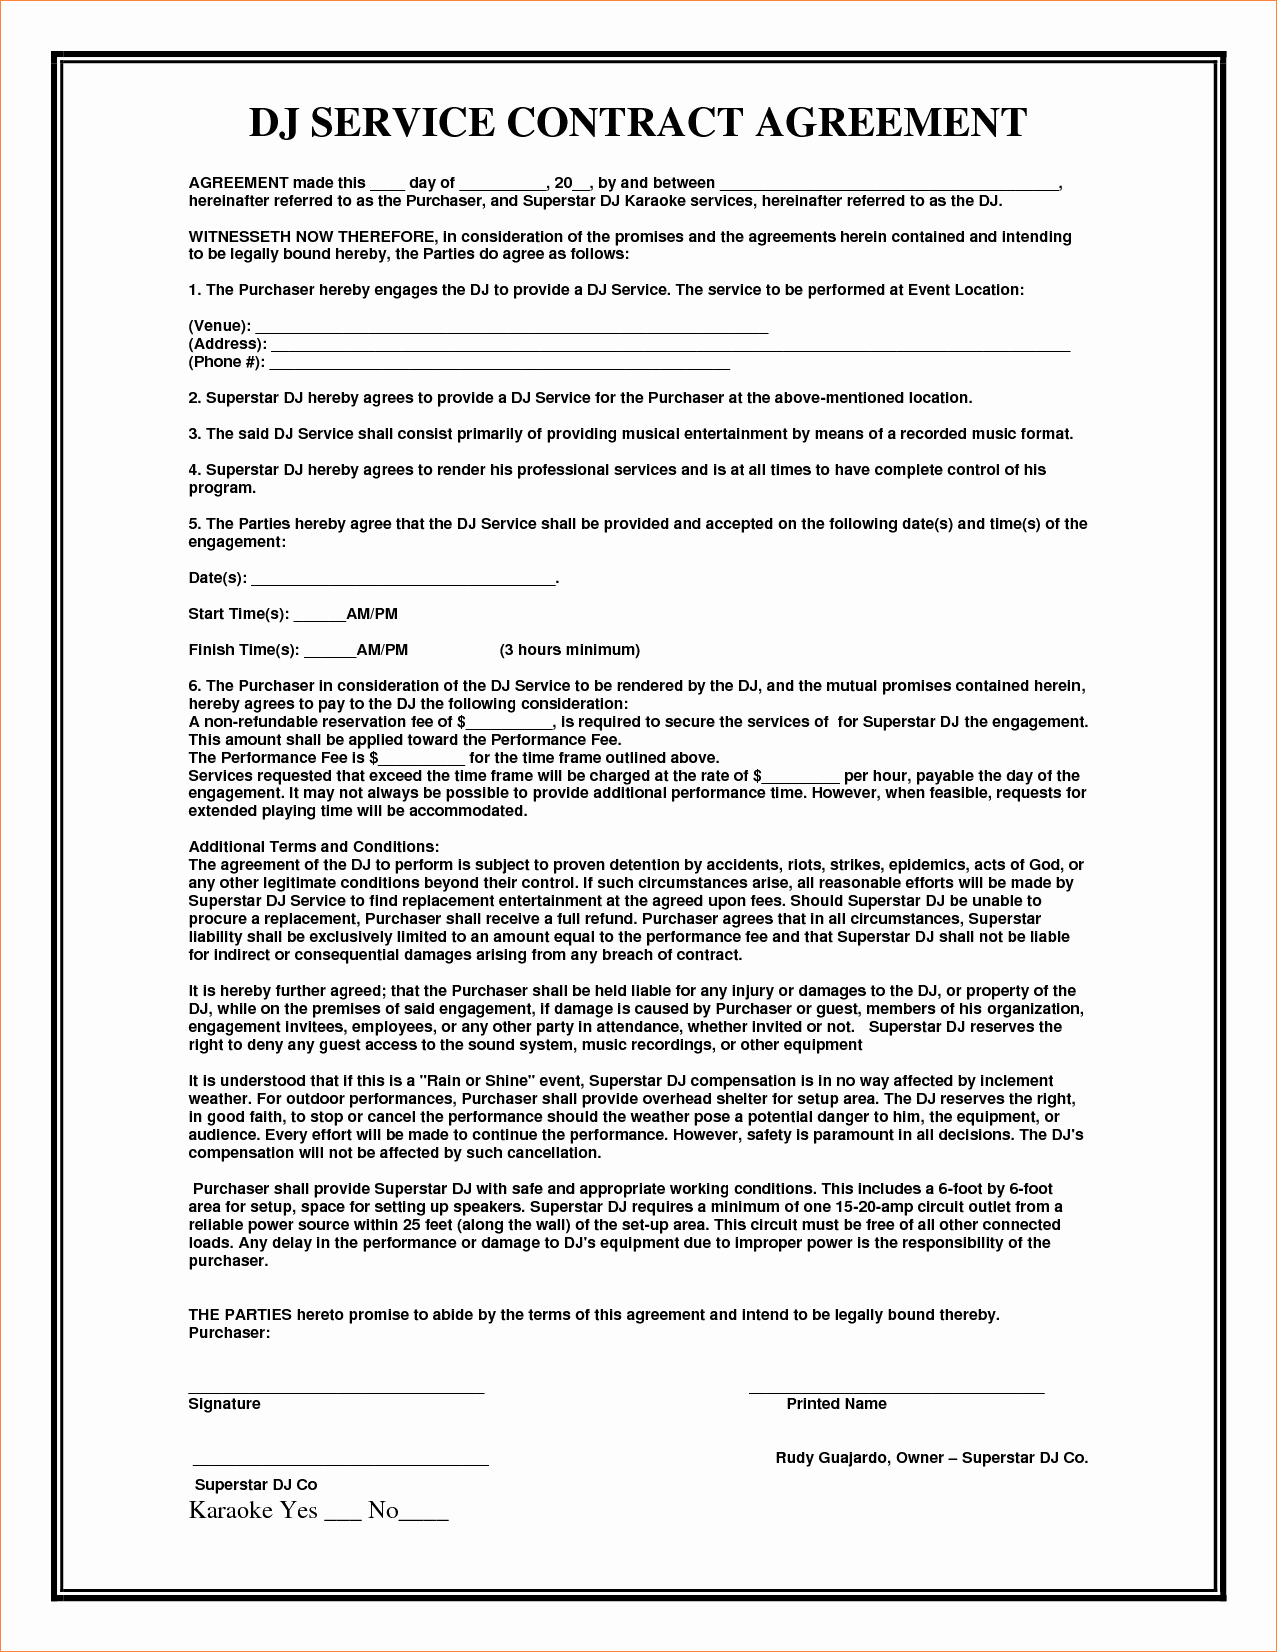 Managed Service Agreement Template Unique Contract for Services Agreement